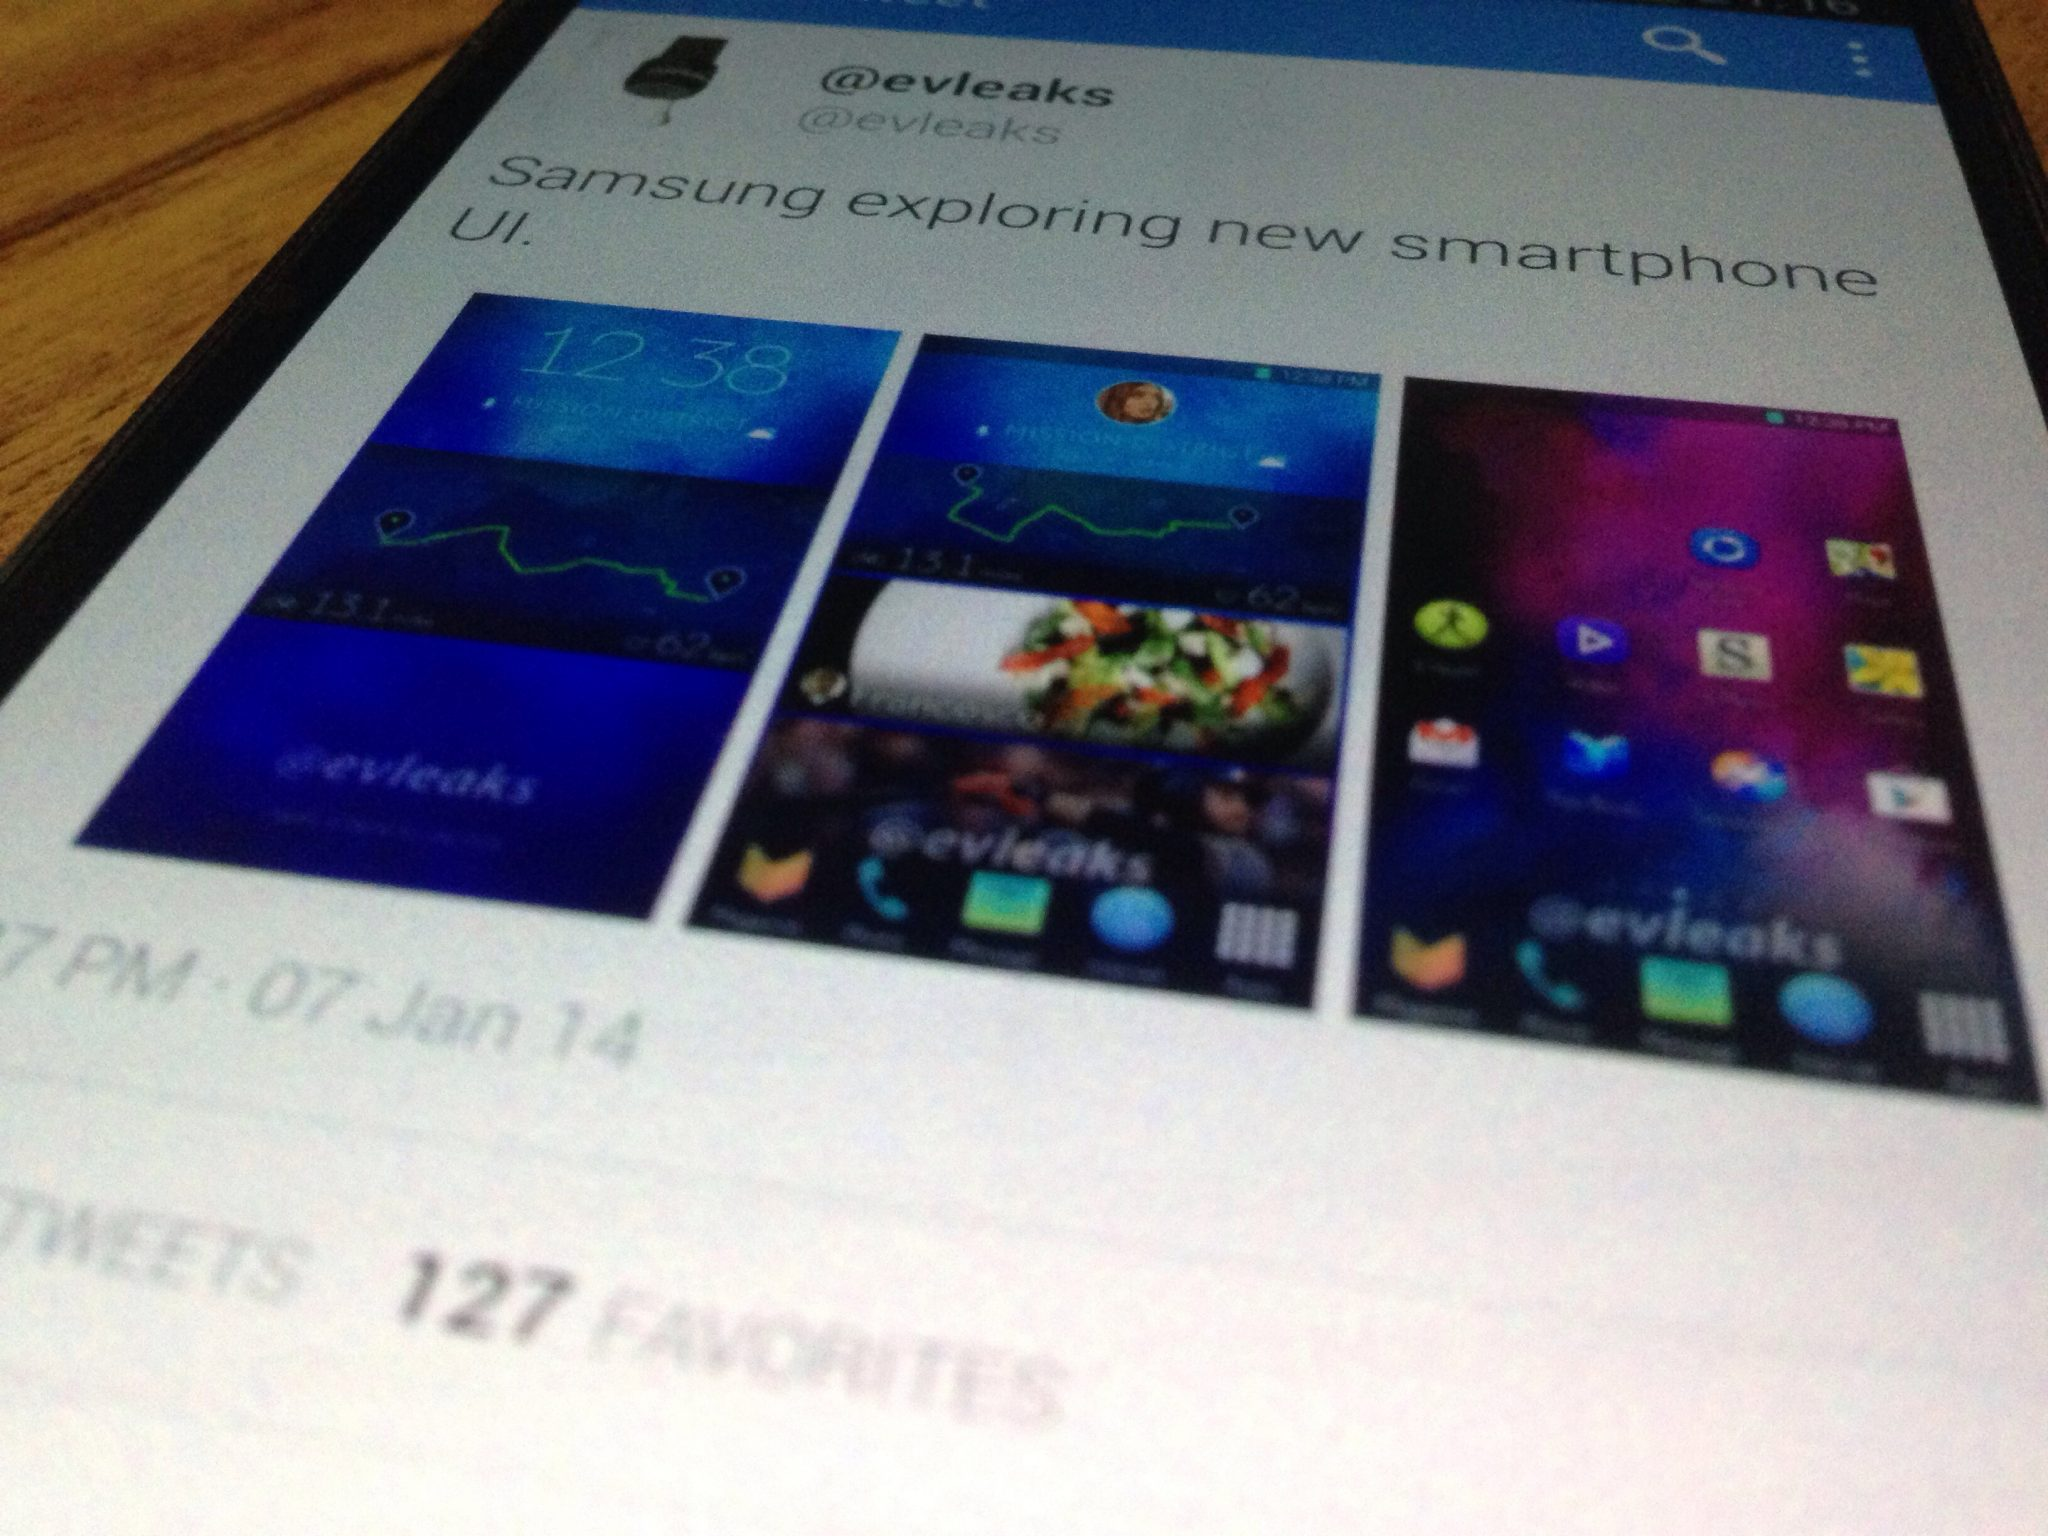 20140107 212702 - LEAKED : Samsung's new Touchwiz UI